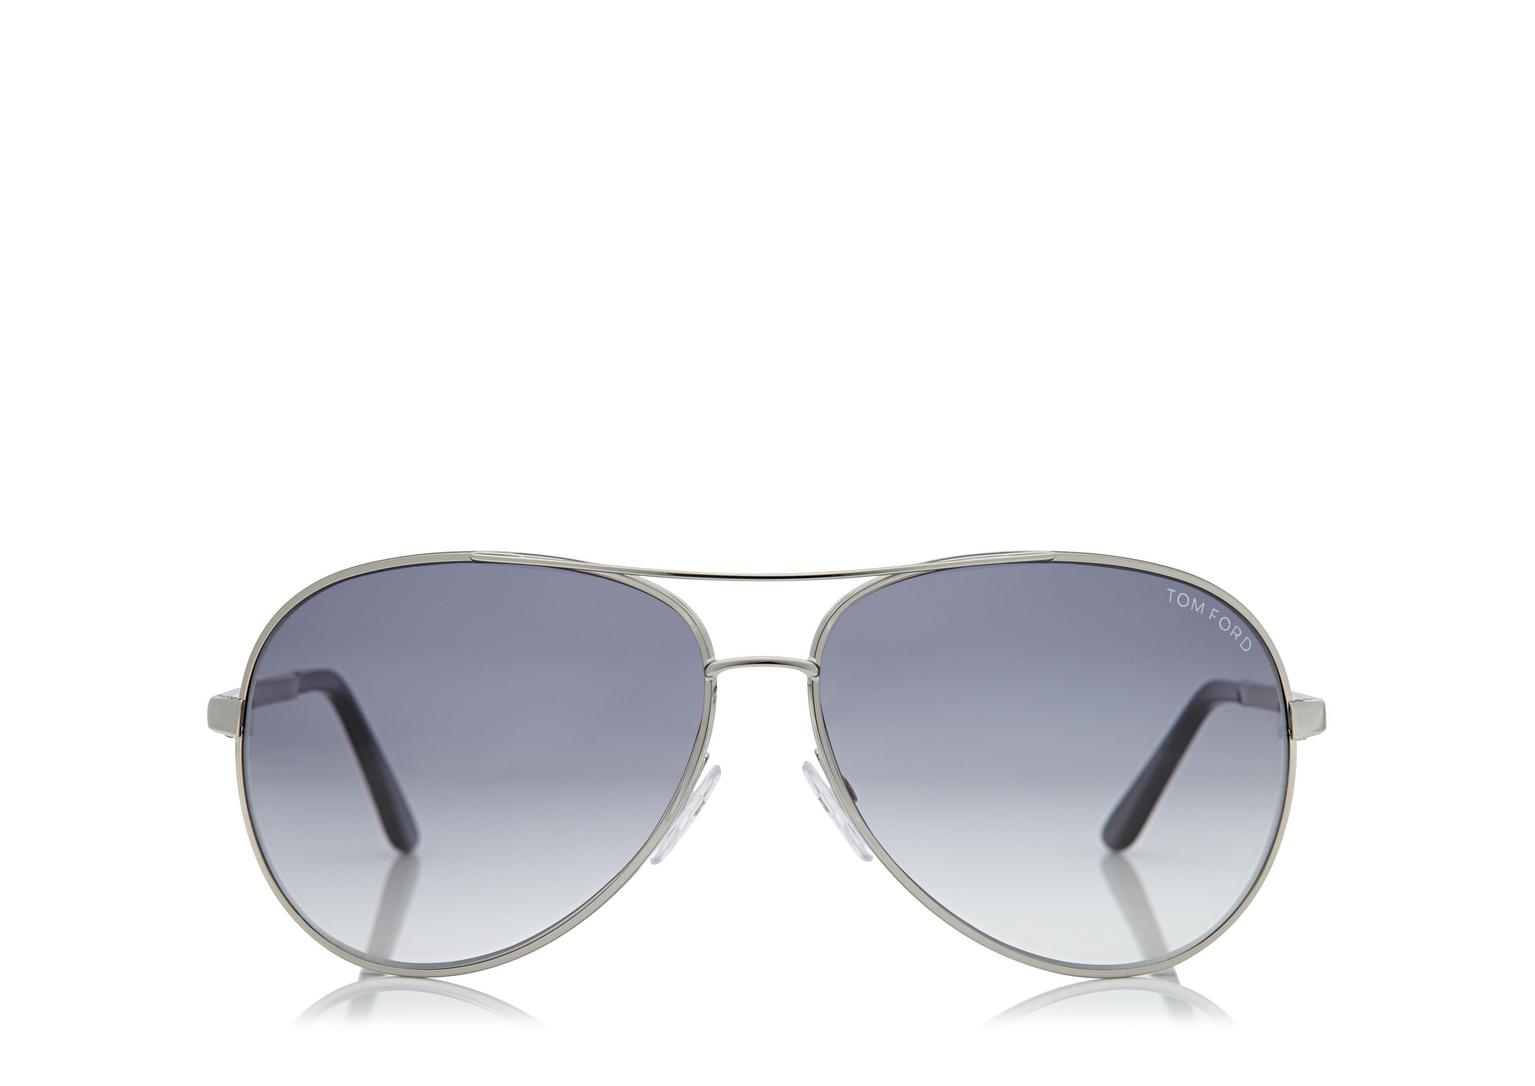 Tom Ford Charles Aviator Palladium Sunglasses